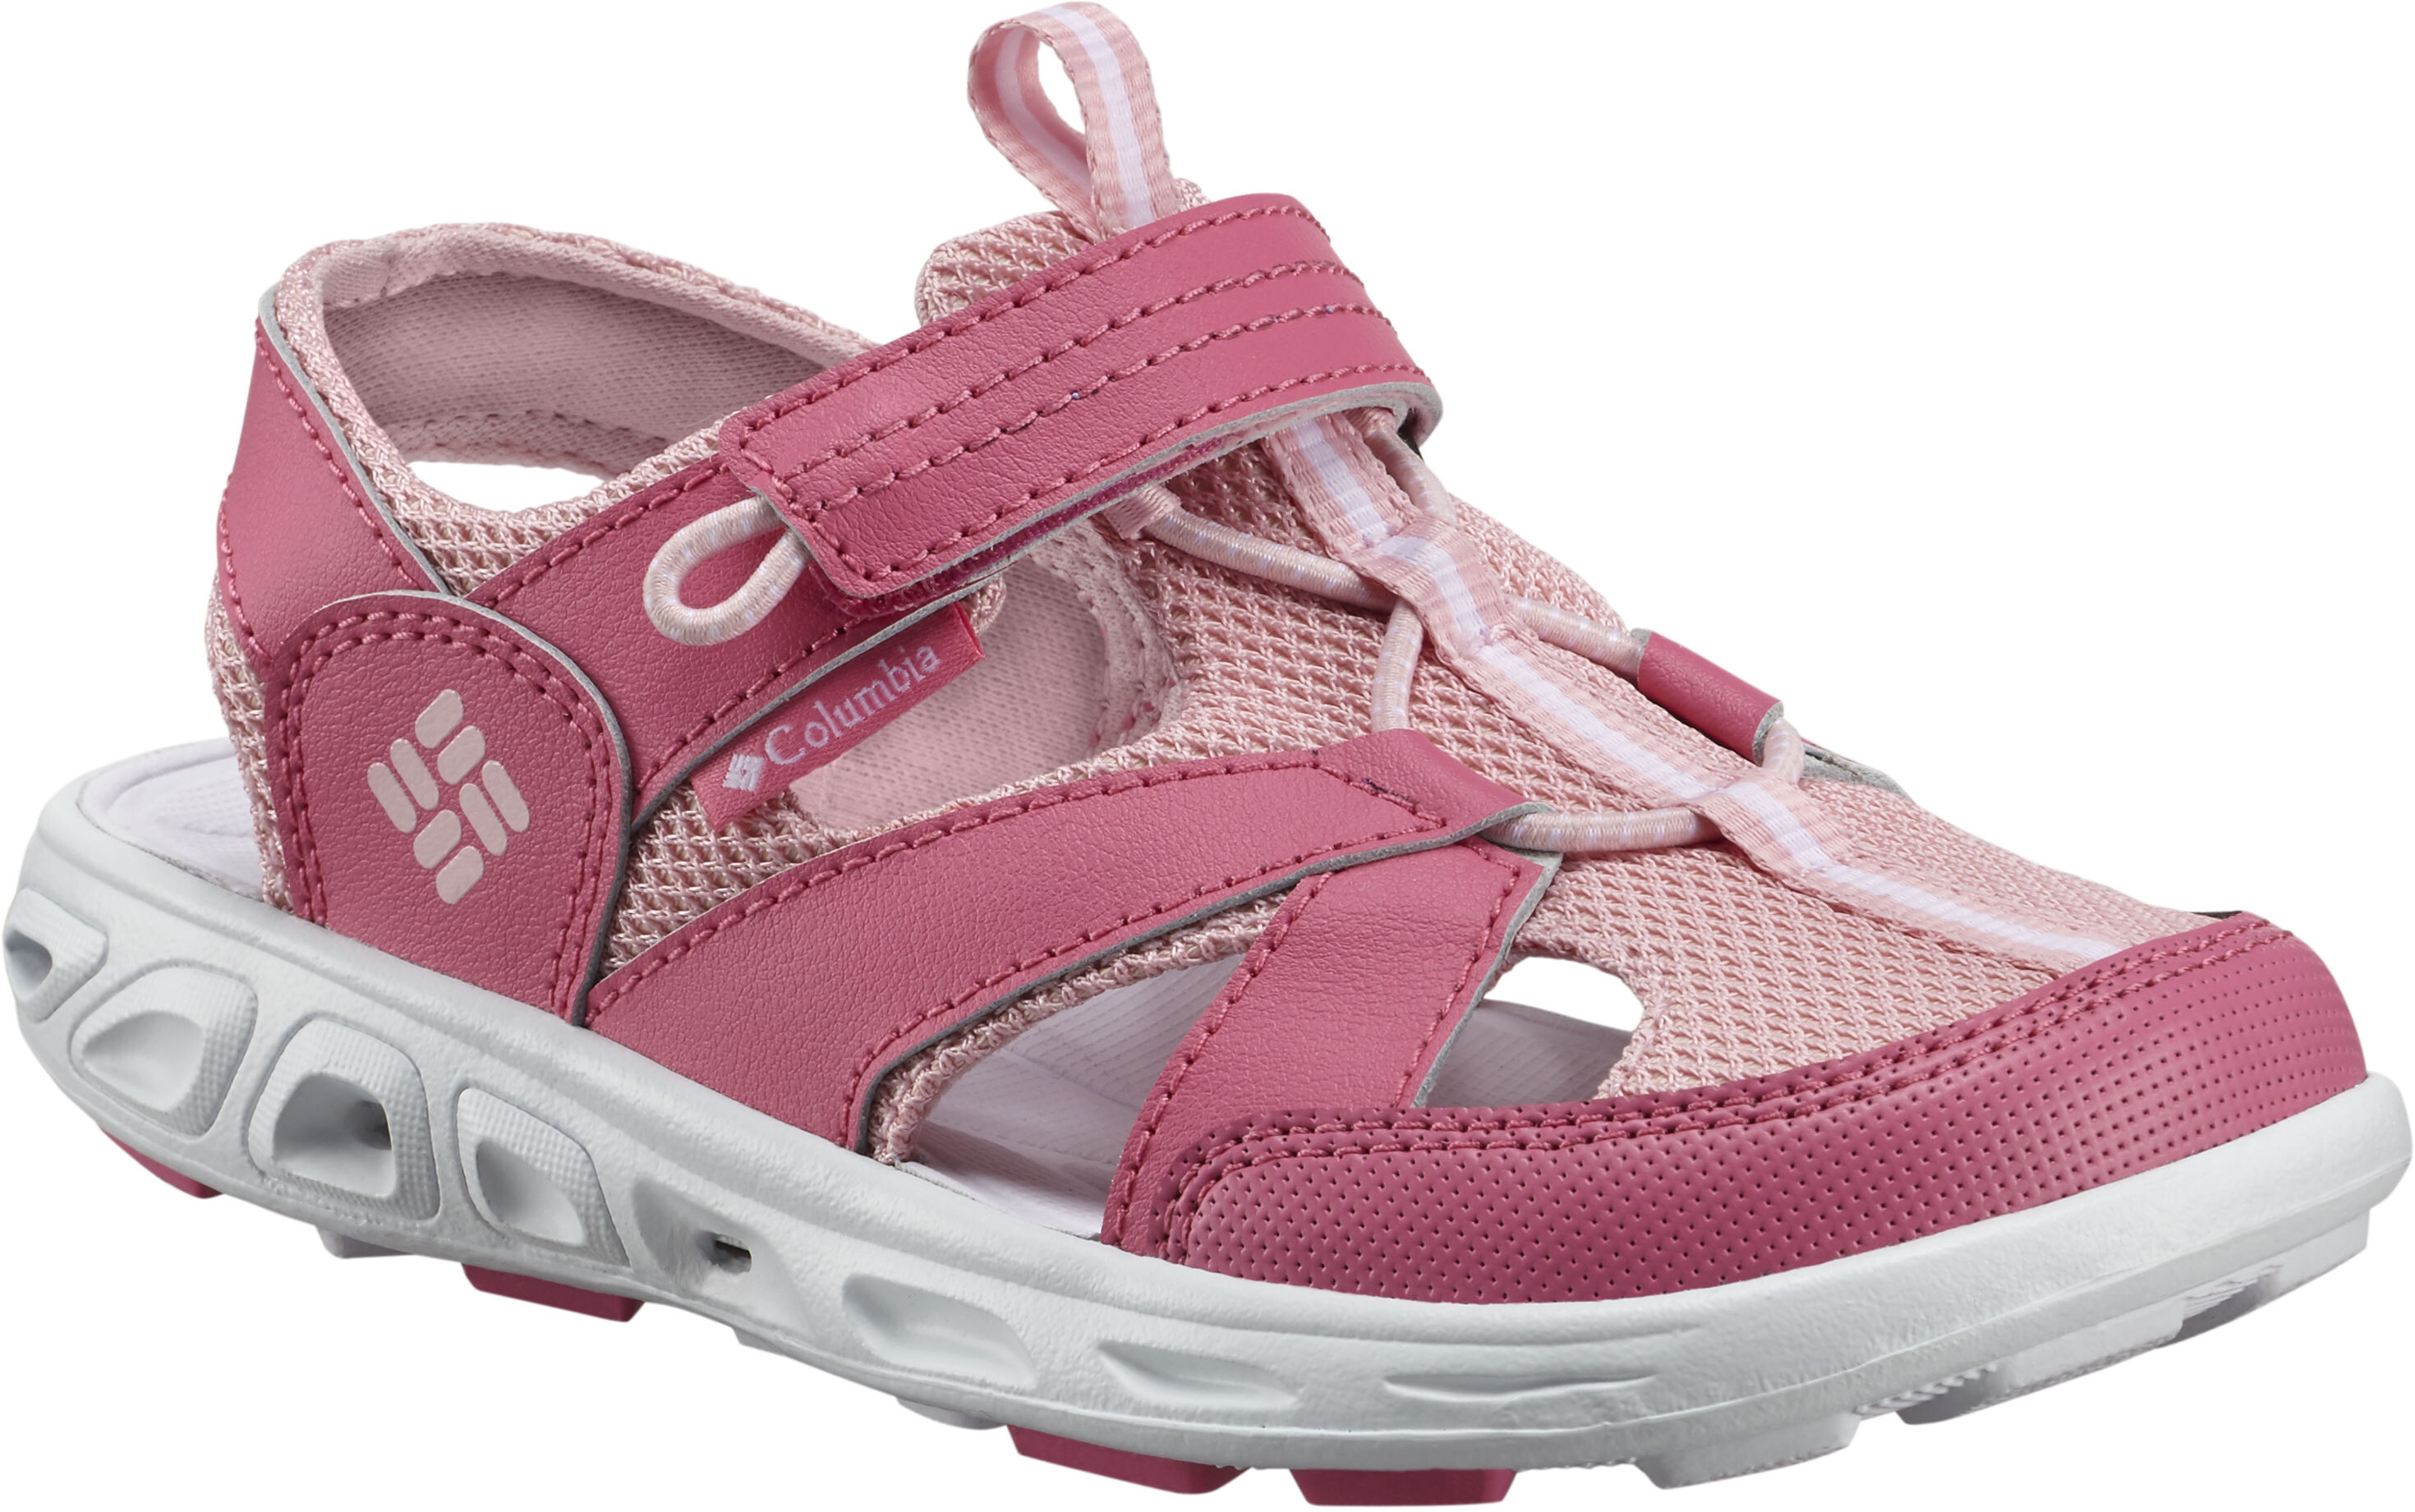 c0f2d38e8c1665 Columbia Techsun Wave Sandals Children pink at Addnature.co.uk